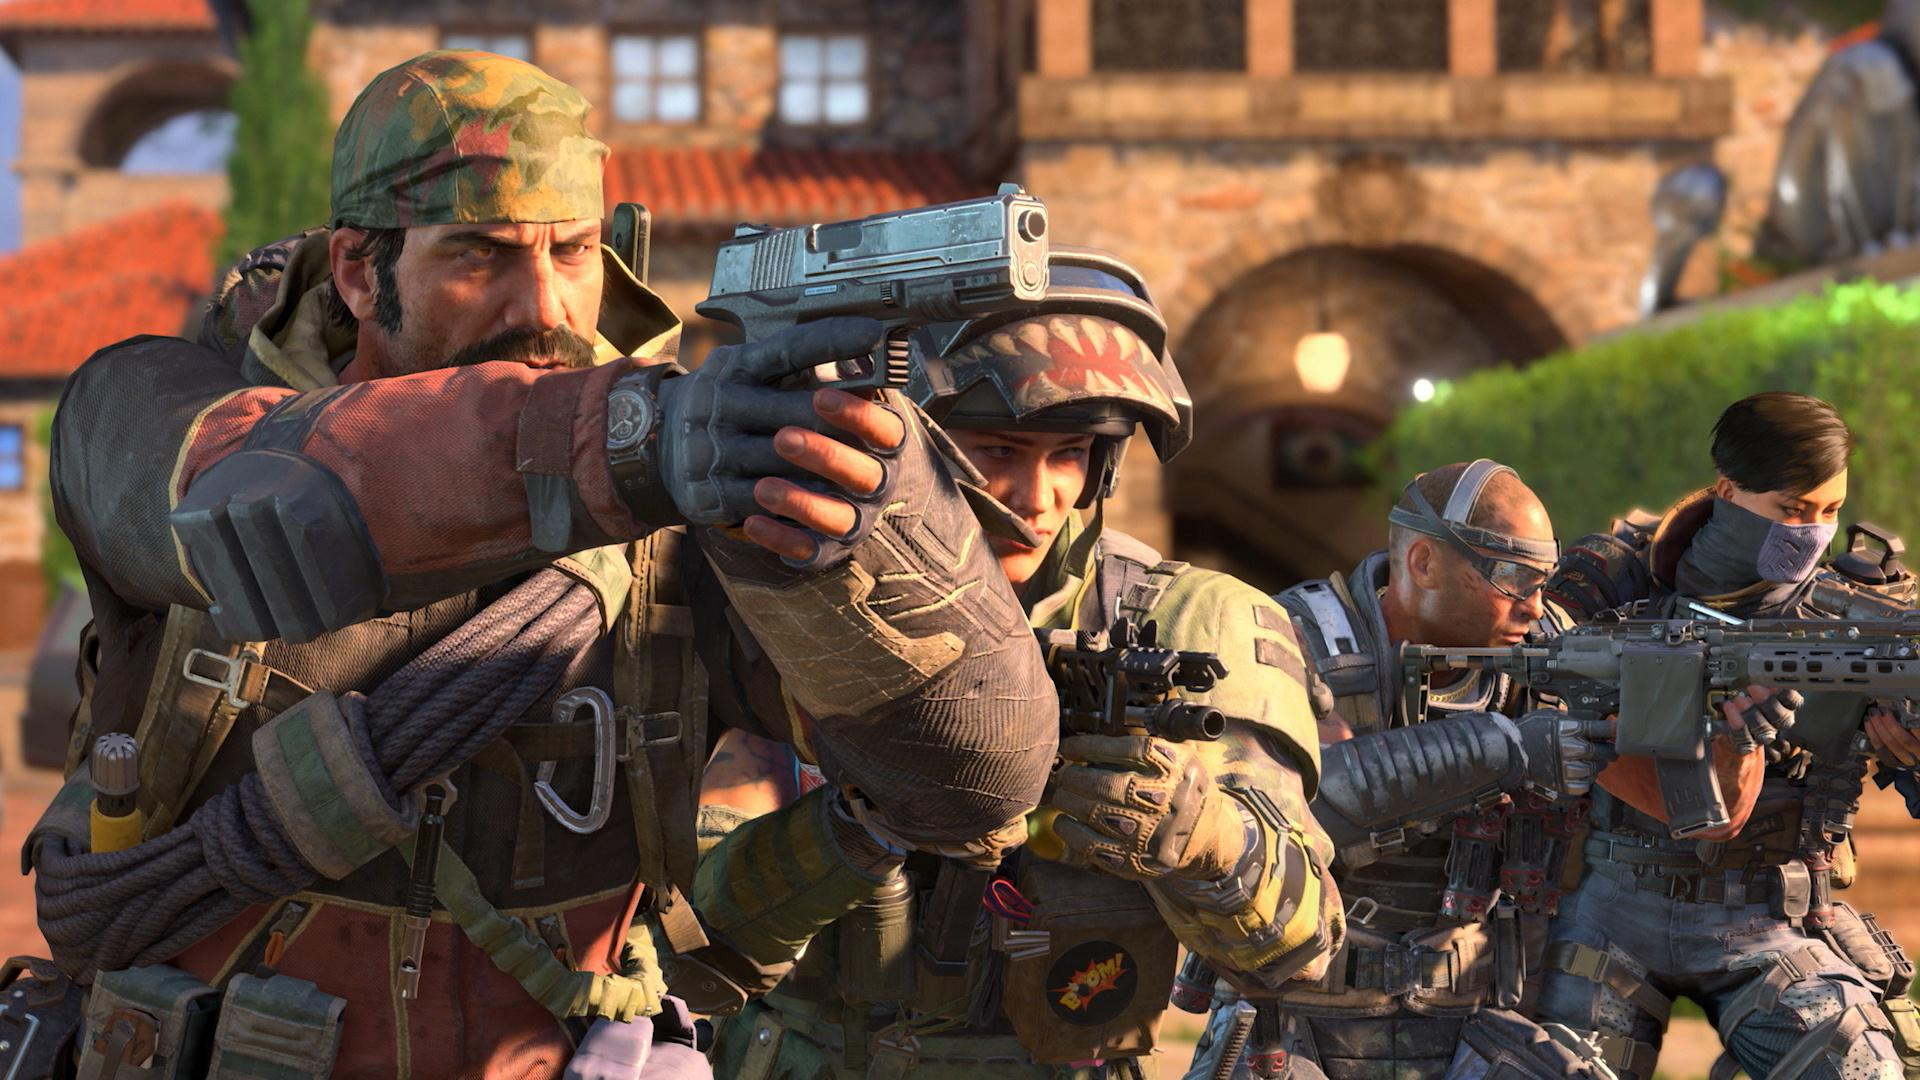 Last Year's Underdogs Now Have A Shot At This Year's Call Of Duty Championship